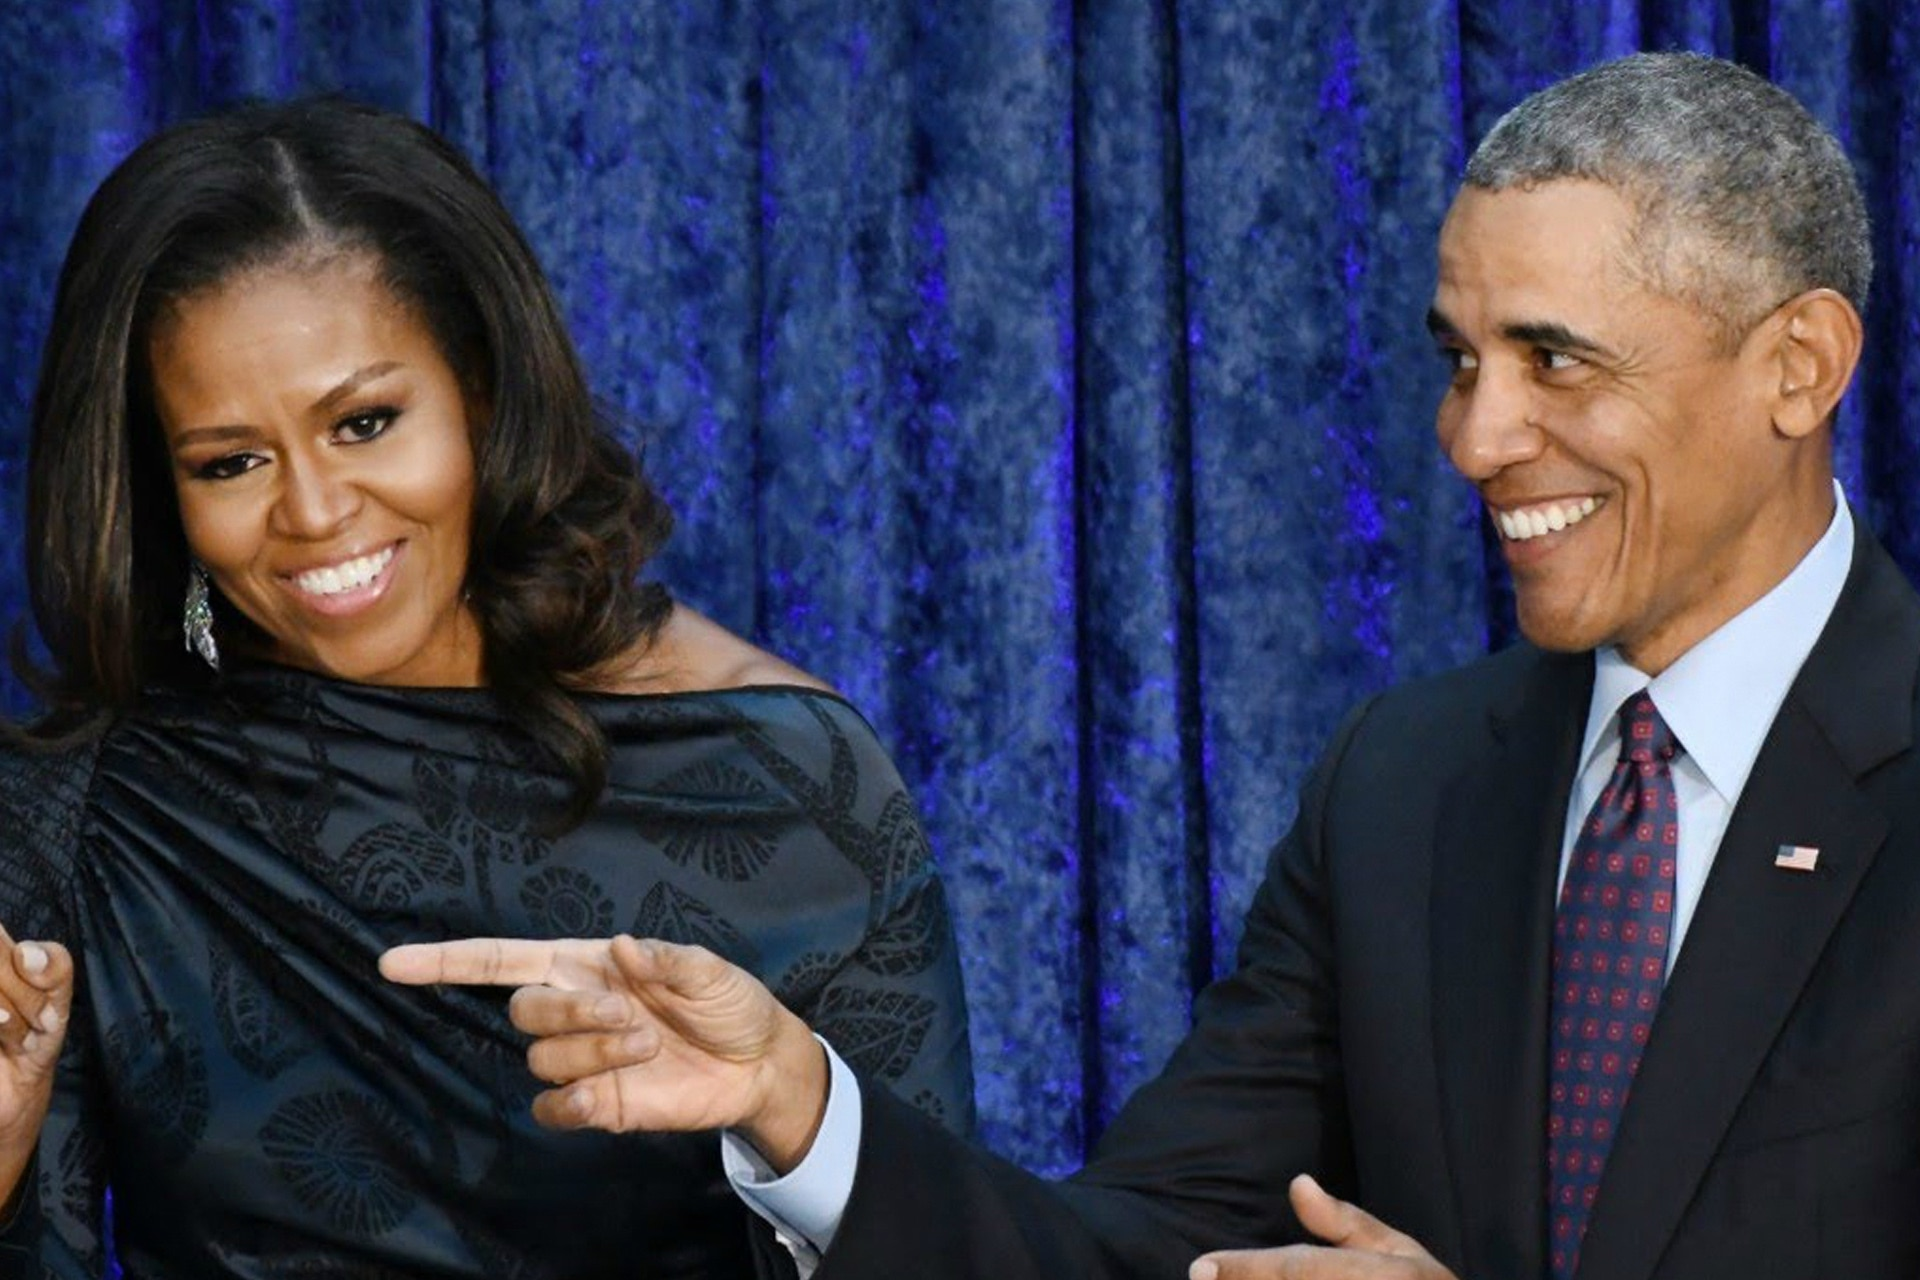 It's Official: The Obamas Are Likely Oscar Contenders Thanks